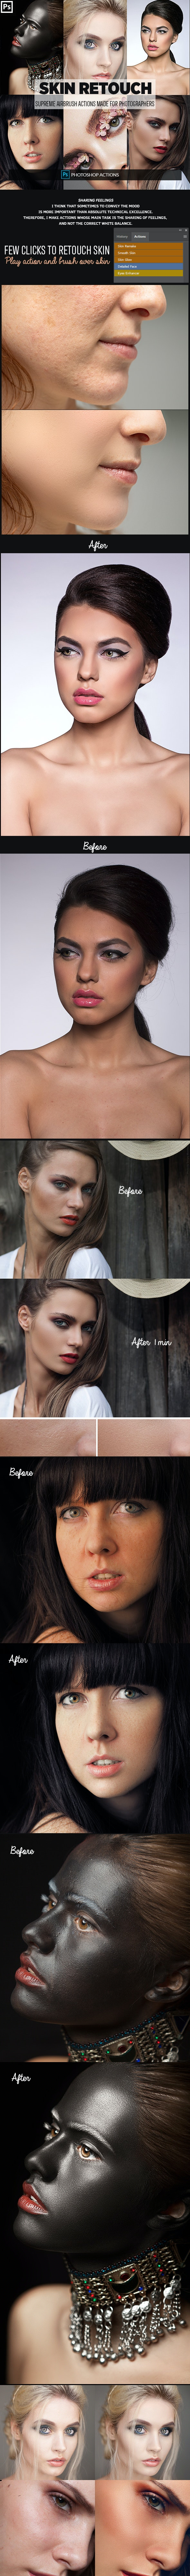 Easy Skin Retouch Photoshop Actions - Actions Photoshop